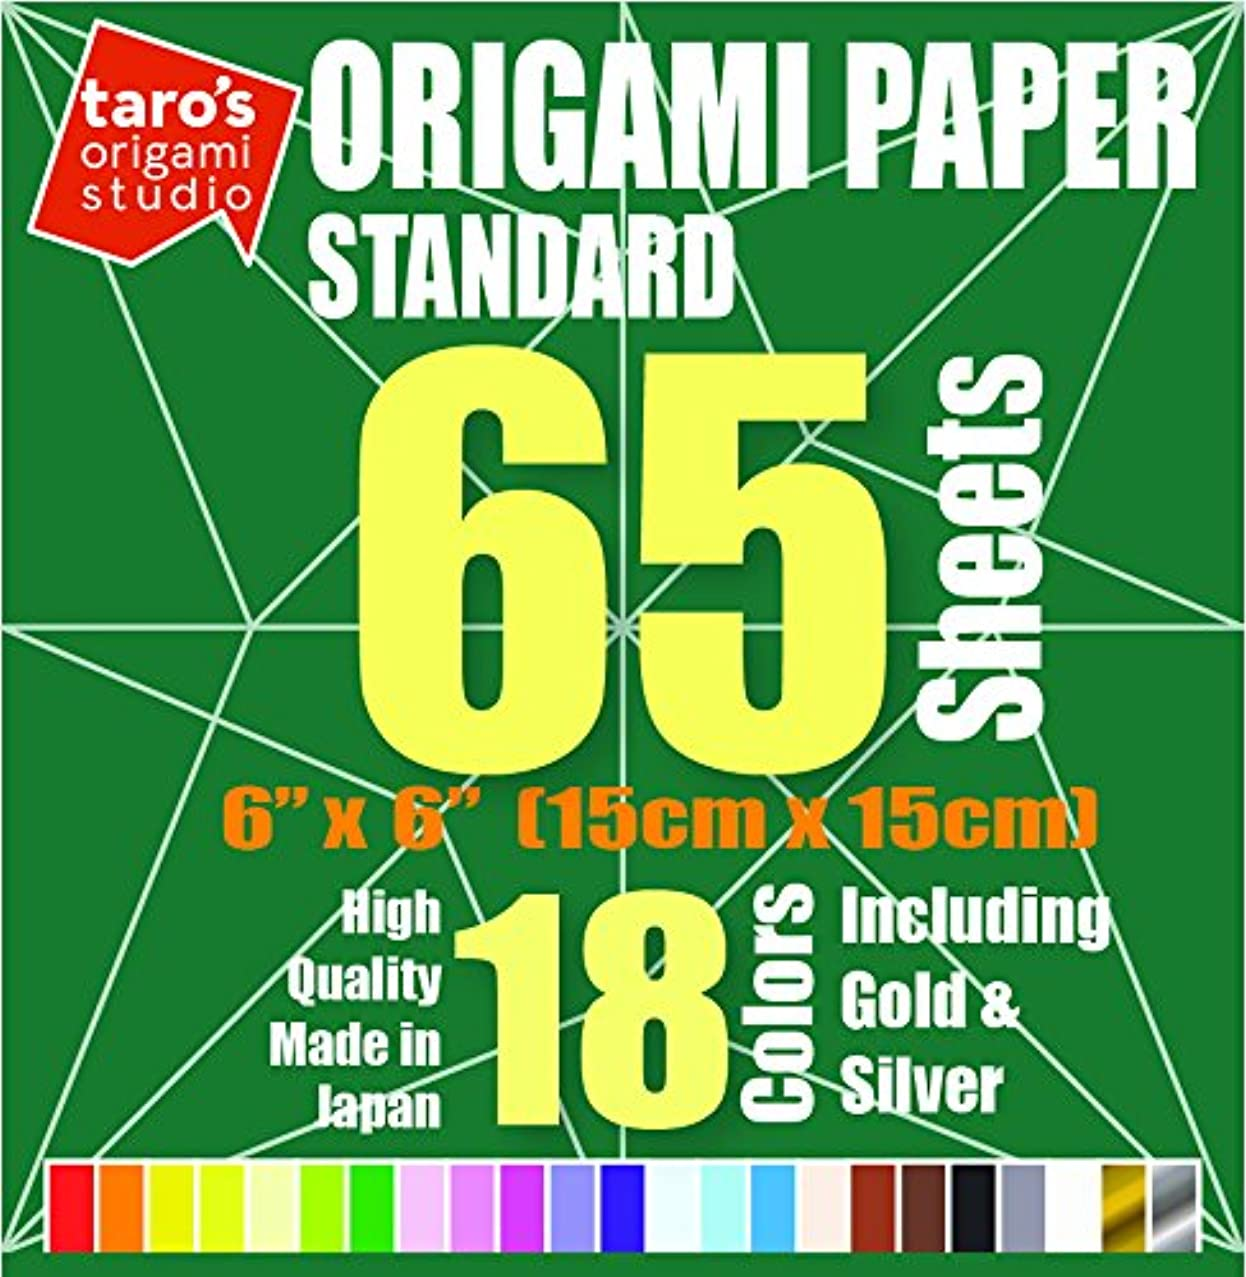 [Standard 65 Made in Japan] Taro's Origami Studio Premium Japanese Origami Paper (6 inch, 65 Sheets, Single Side 18 Colors Including Gold and Silver)